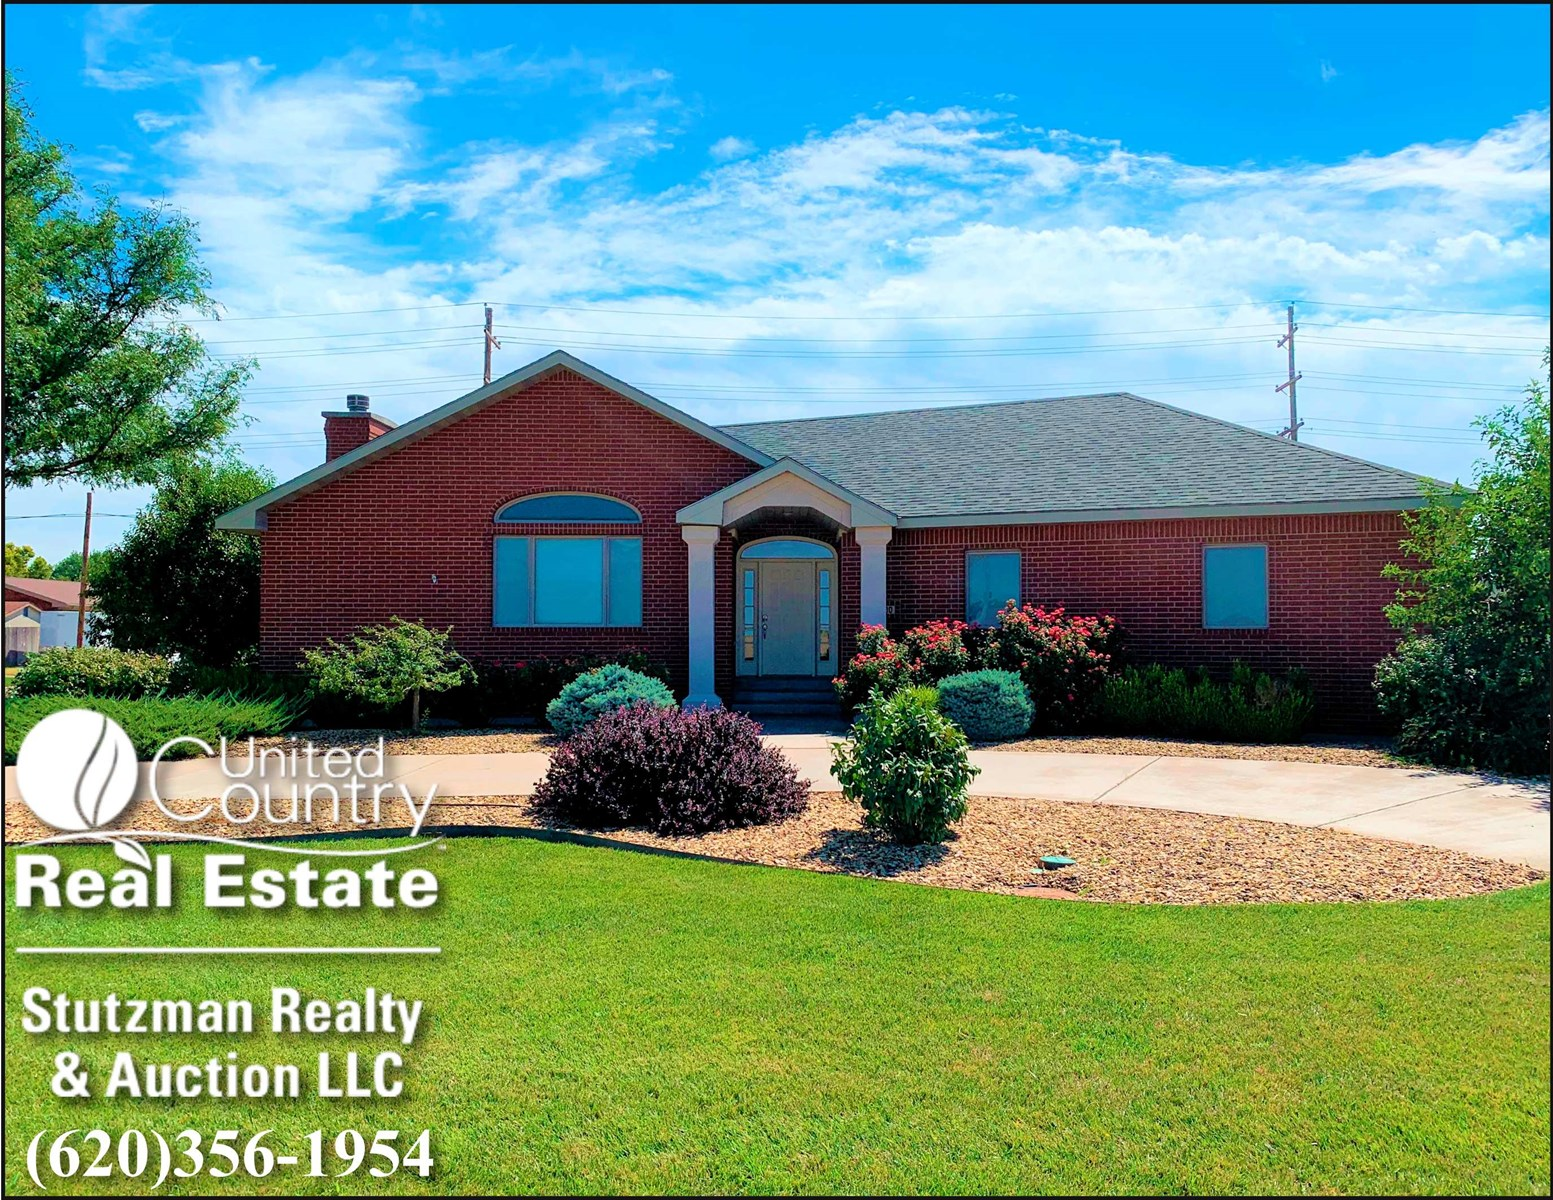 Ulysses Kansas Real Estate & Auctions - Homes, Farms